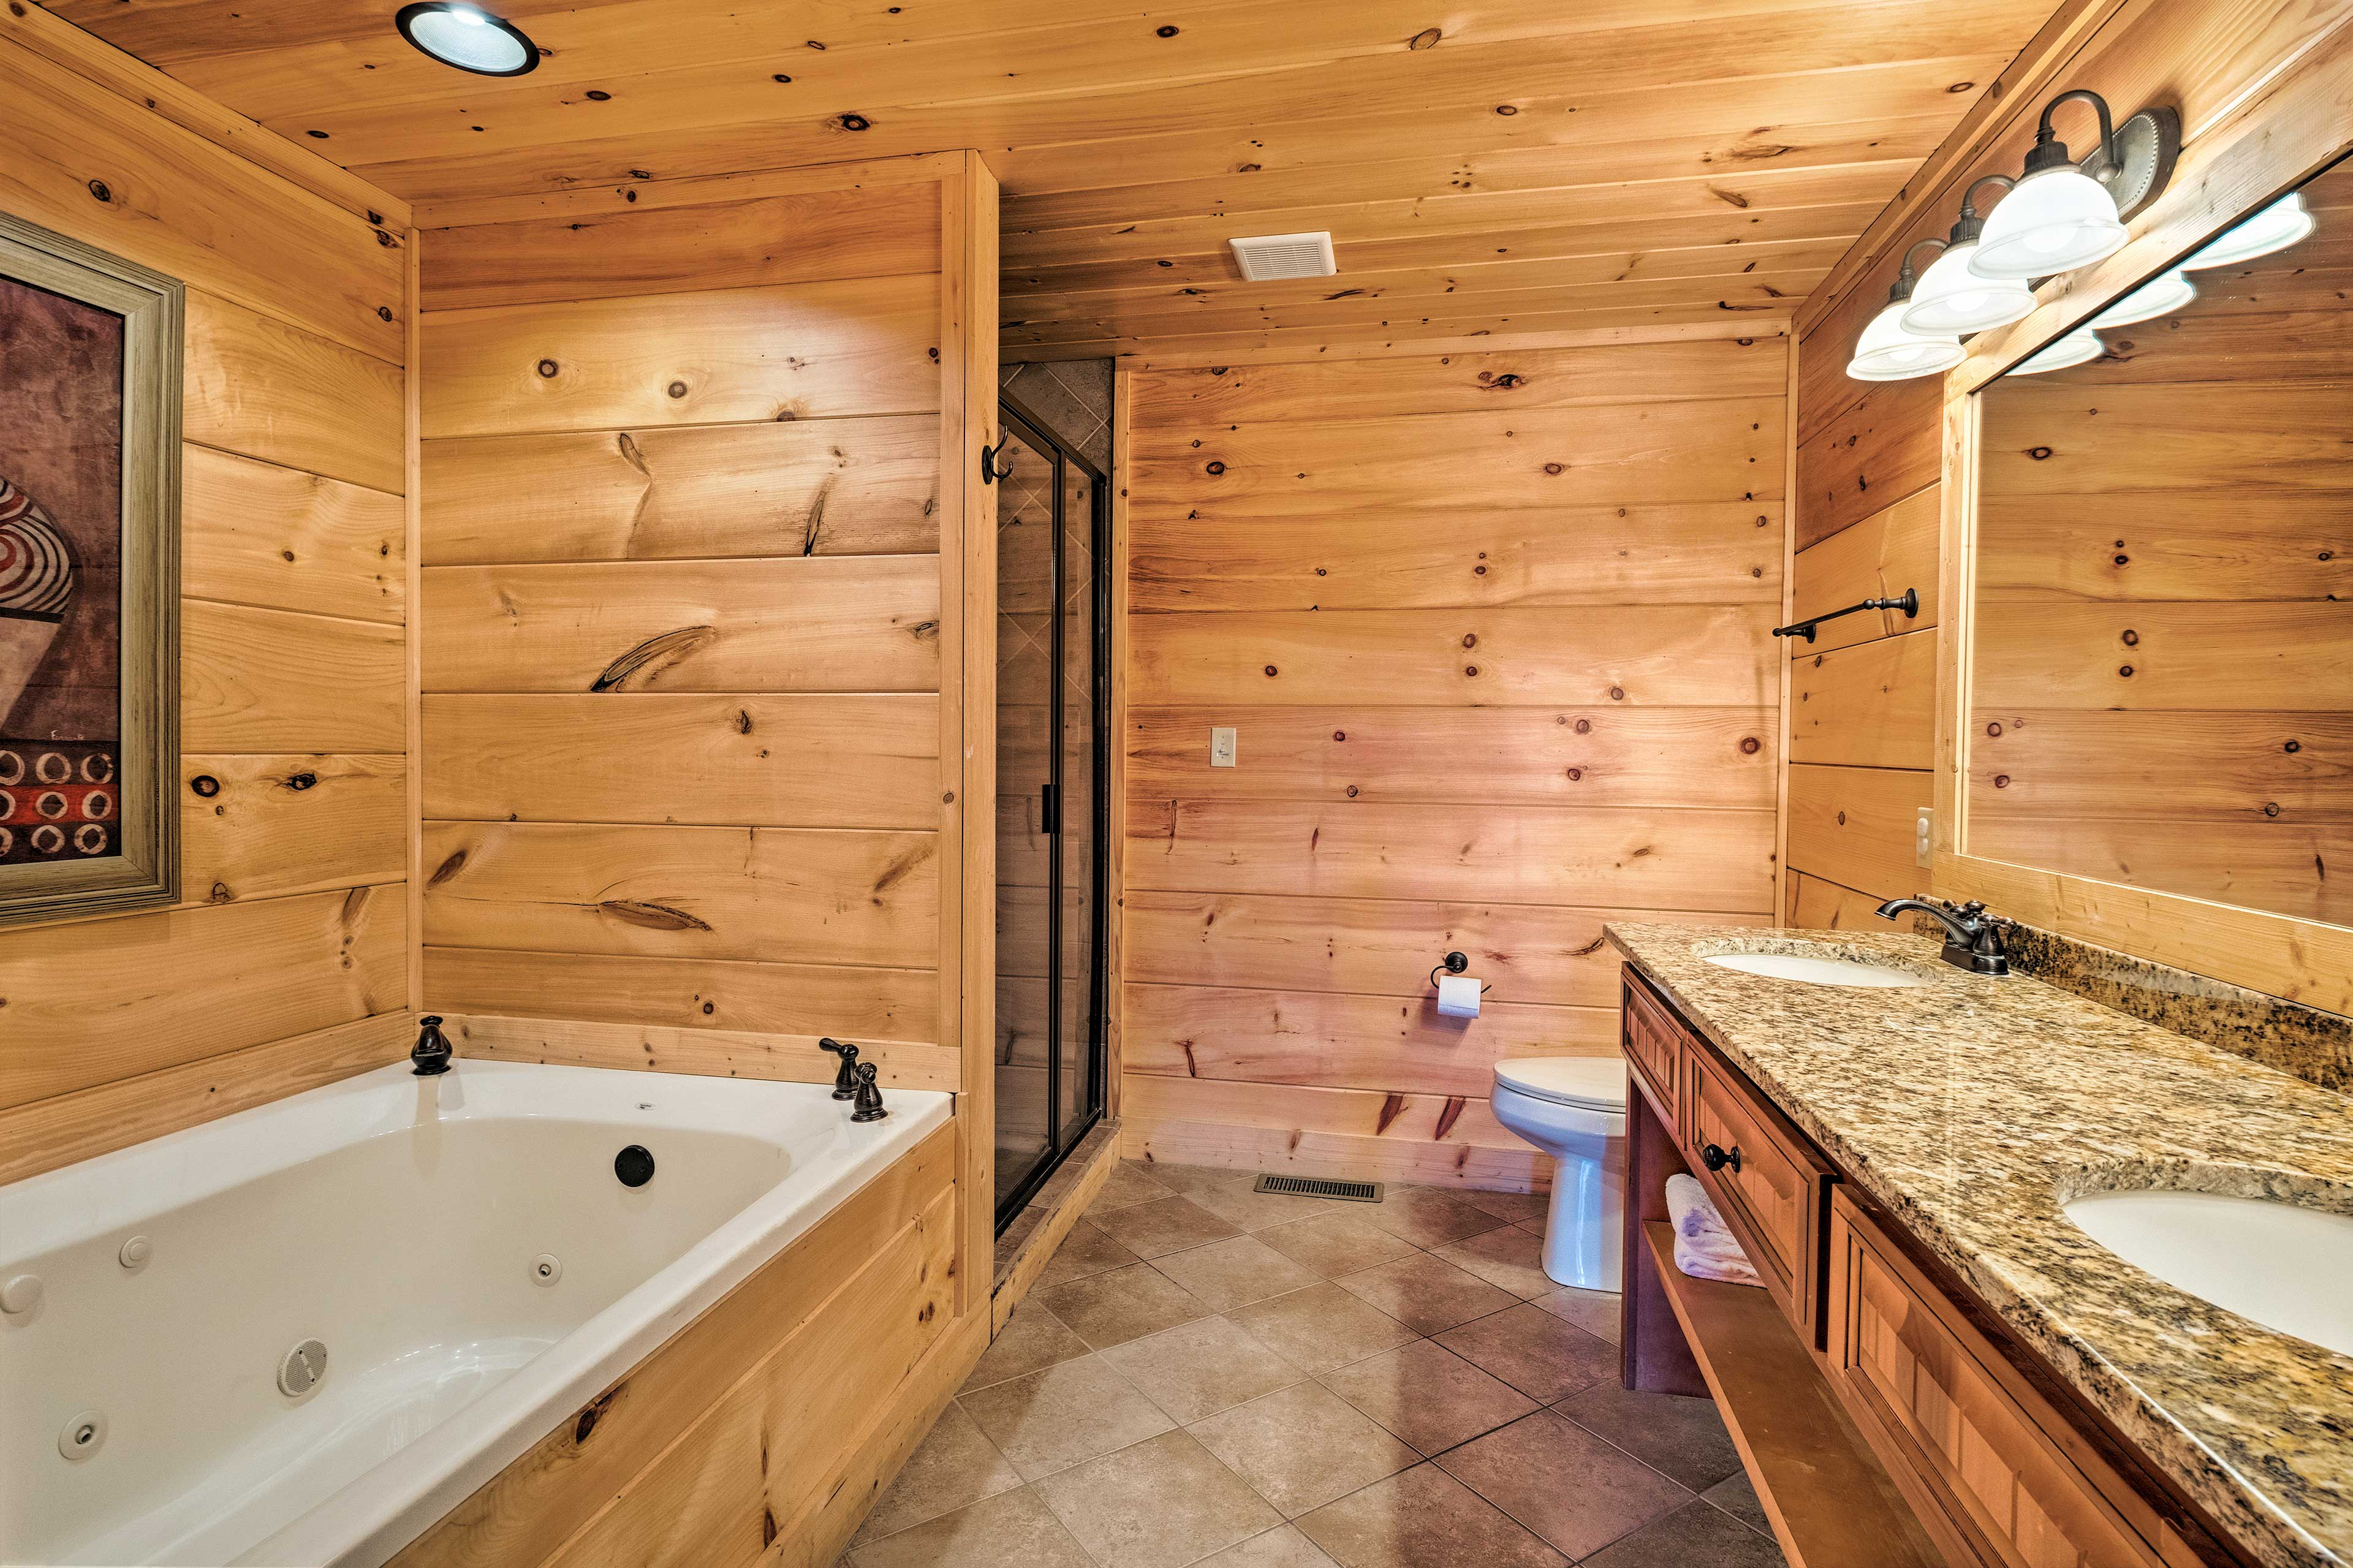 The jetted tub is the perfect alternative to the hot tub.